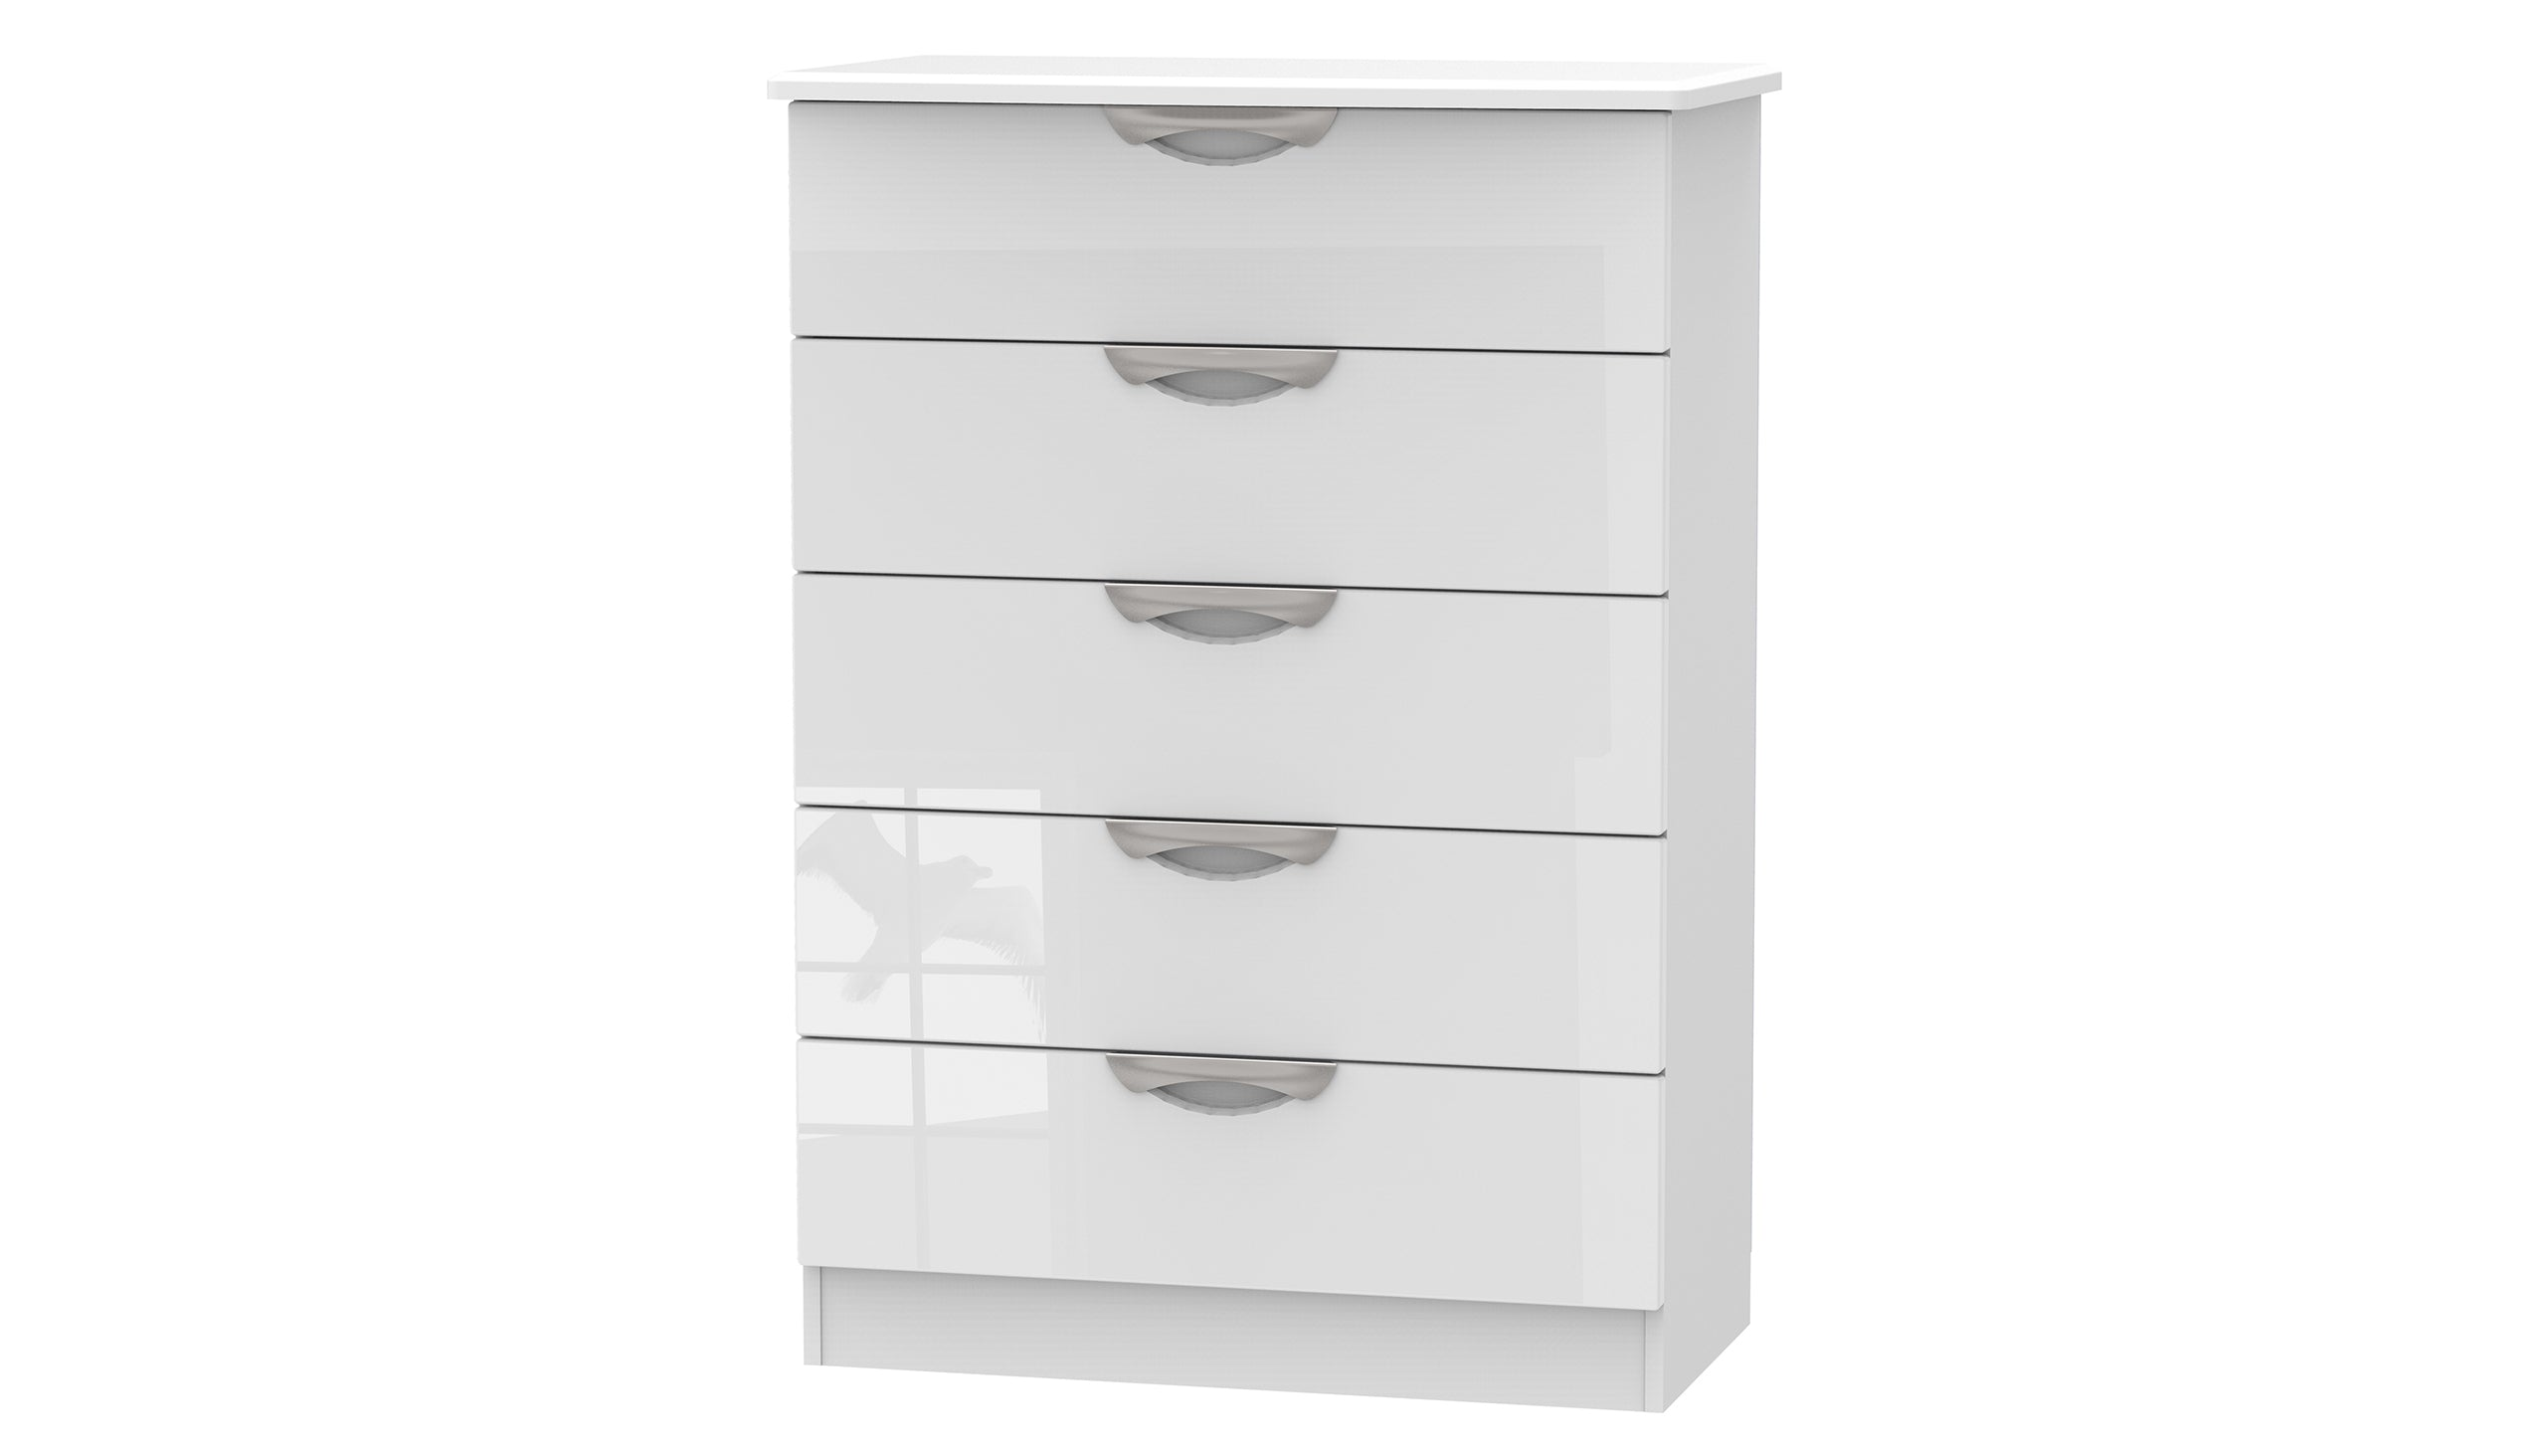 Moda 5 Drawer Chest - AHF Furniture & Carpets